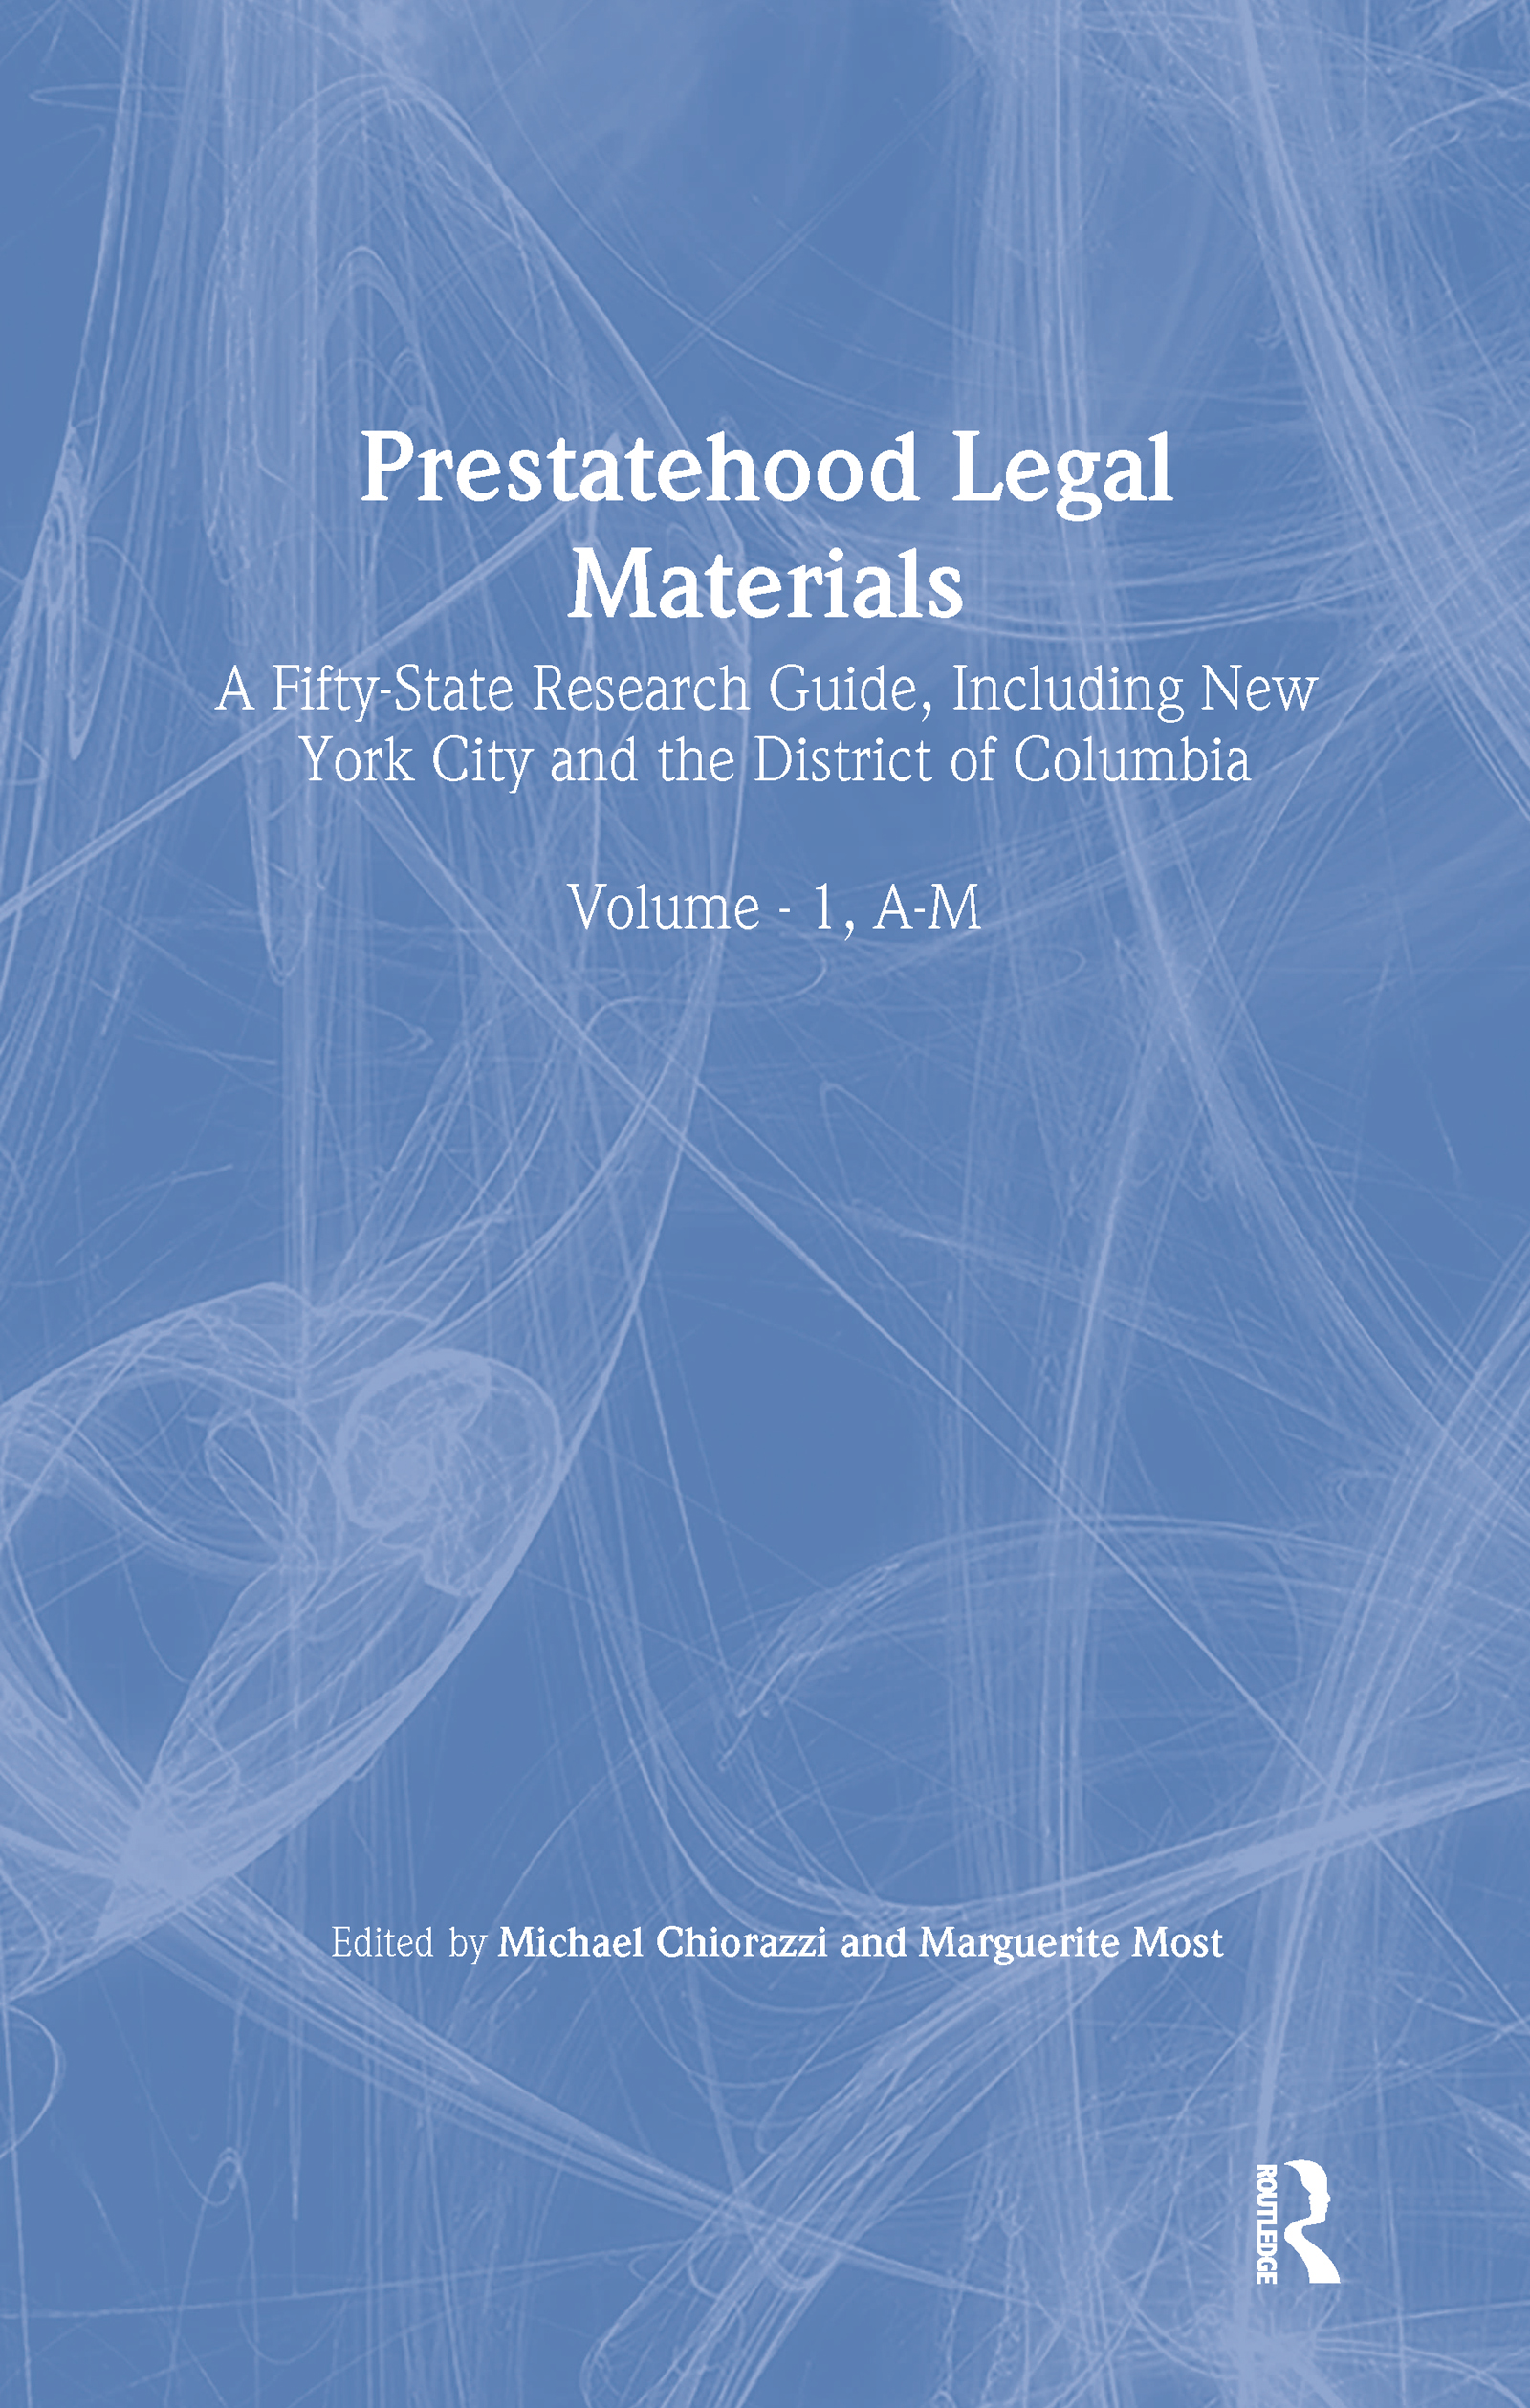 Prestatehood Legal Materials: A Fifty-State Research Guide, Including New York City and the District of Columbia, Volumes 1 & 2 book cover